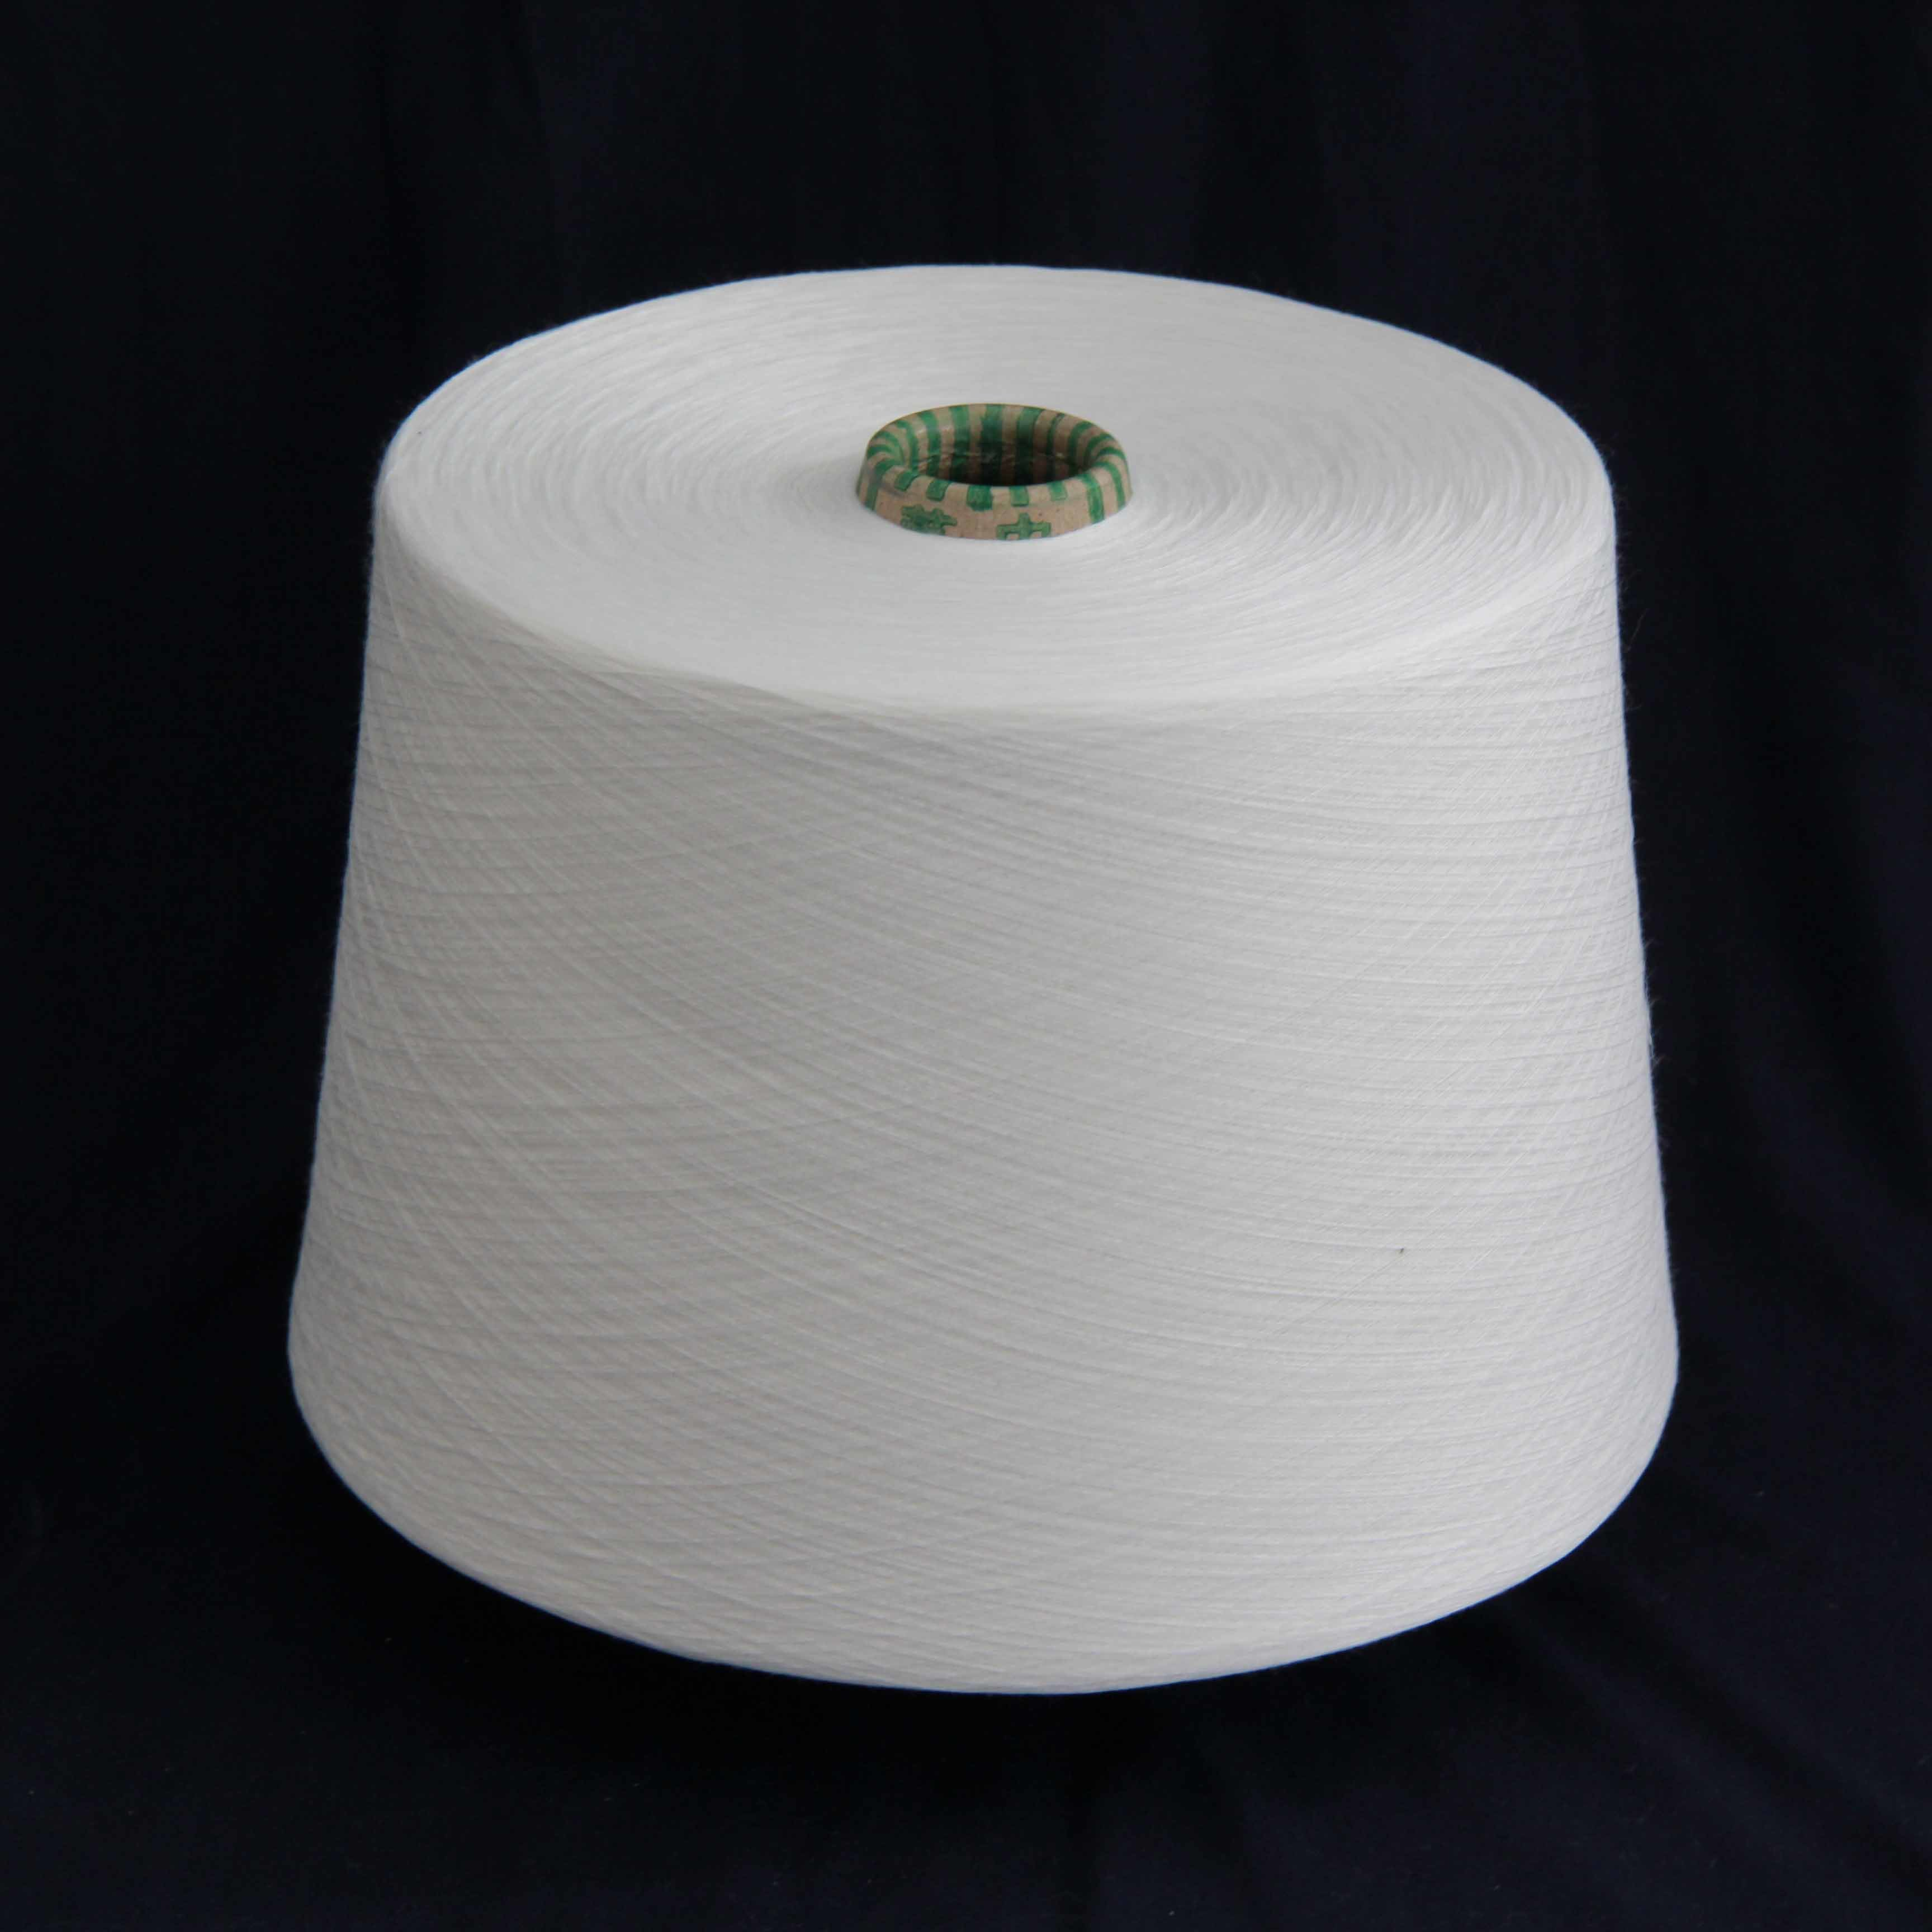 10s 100% Polyester Spun Yarns for Knitting in Raw White